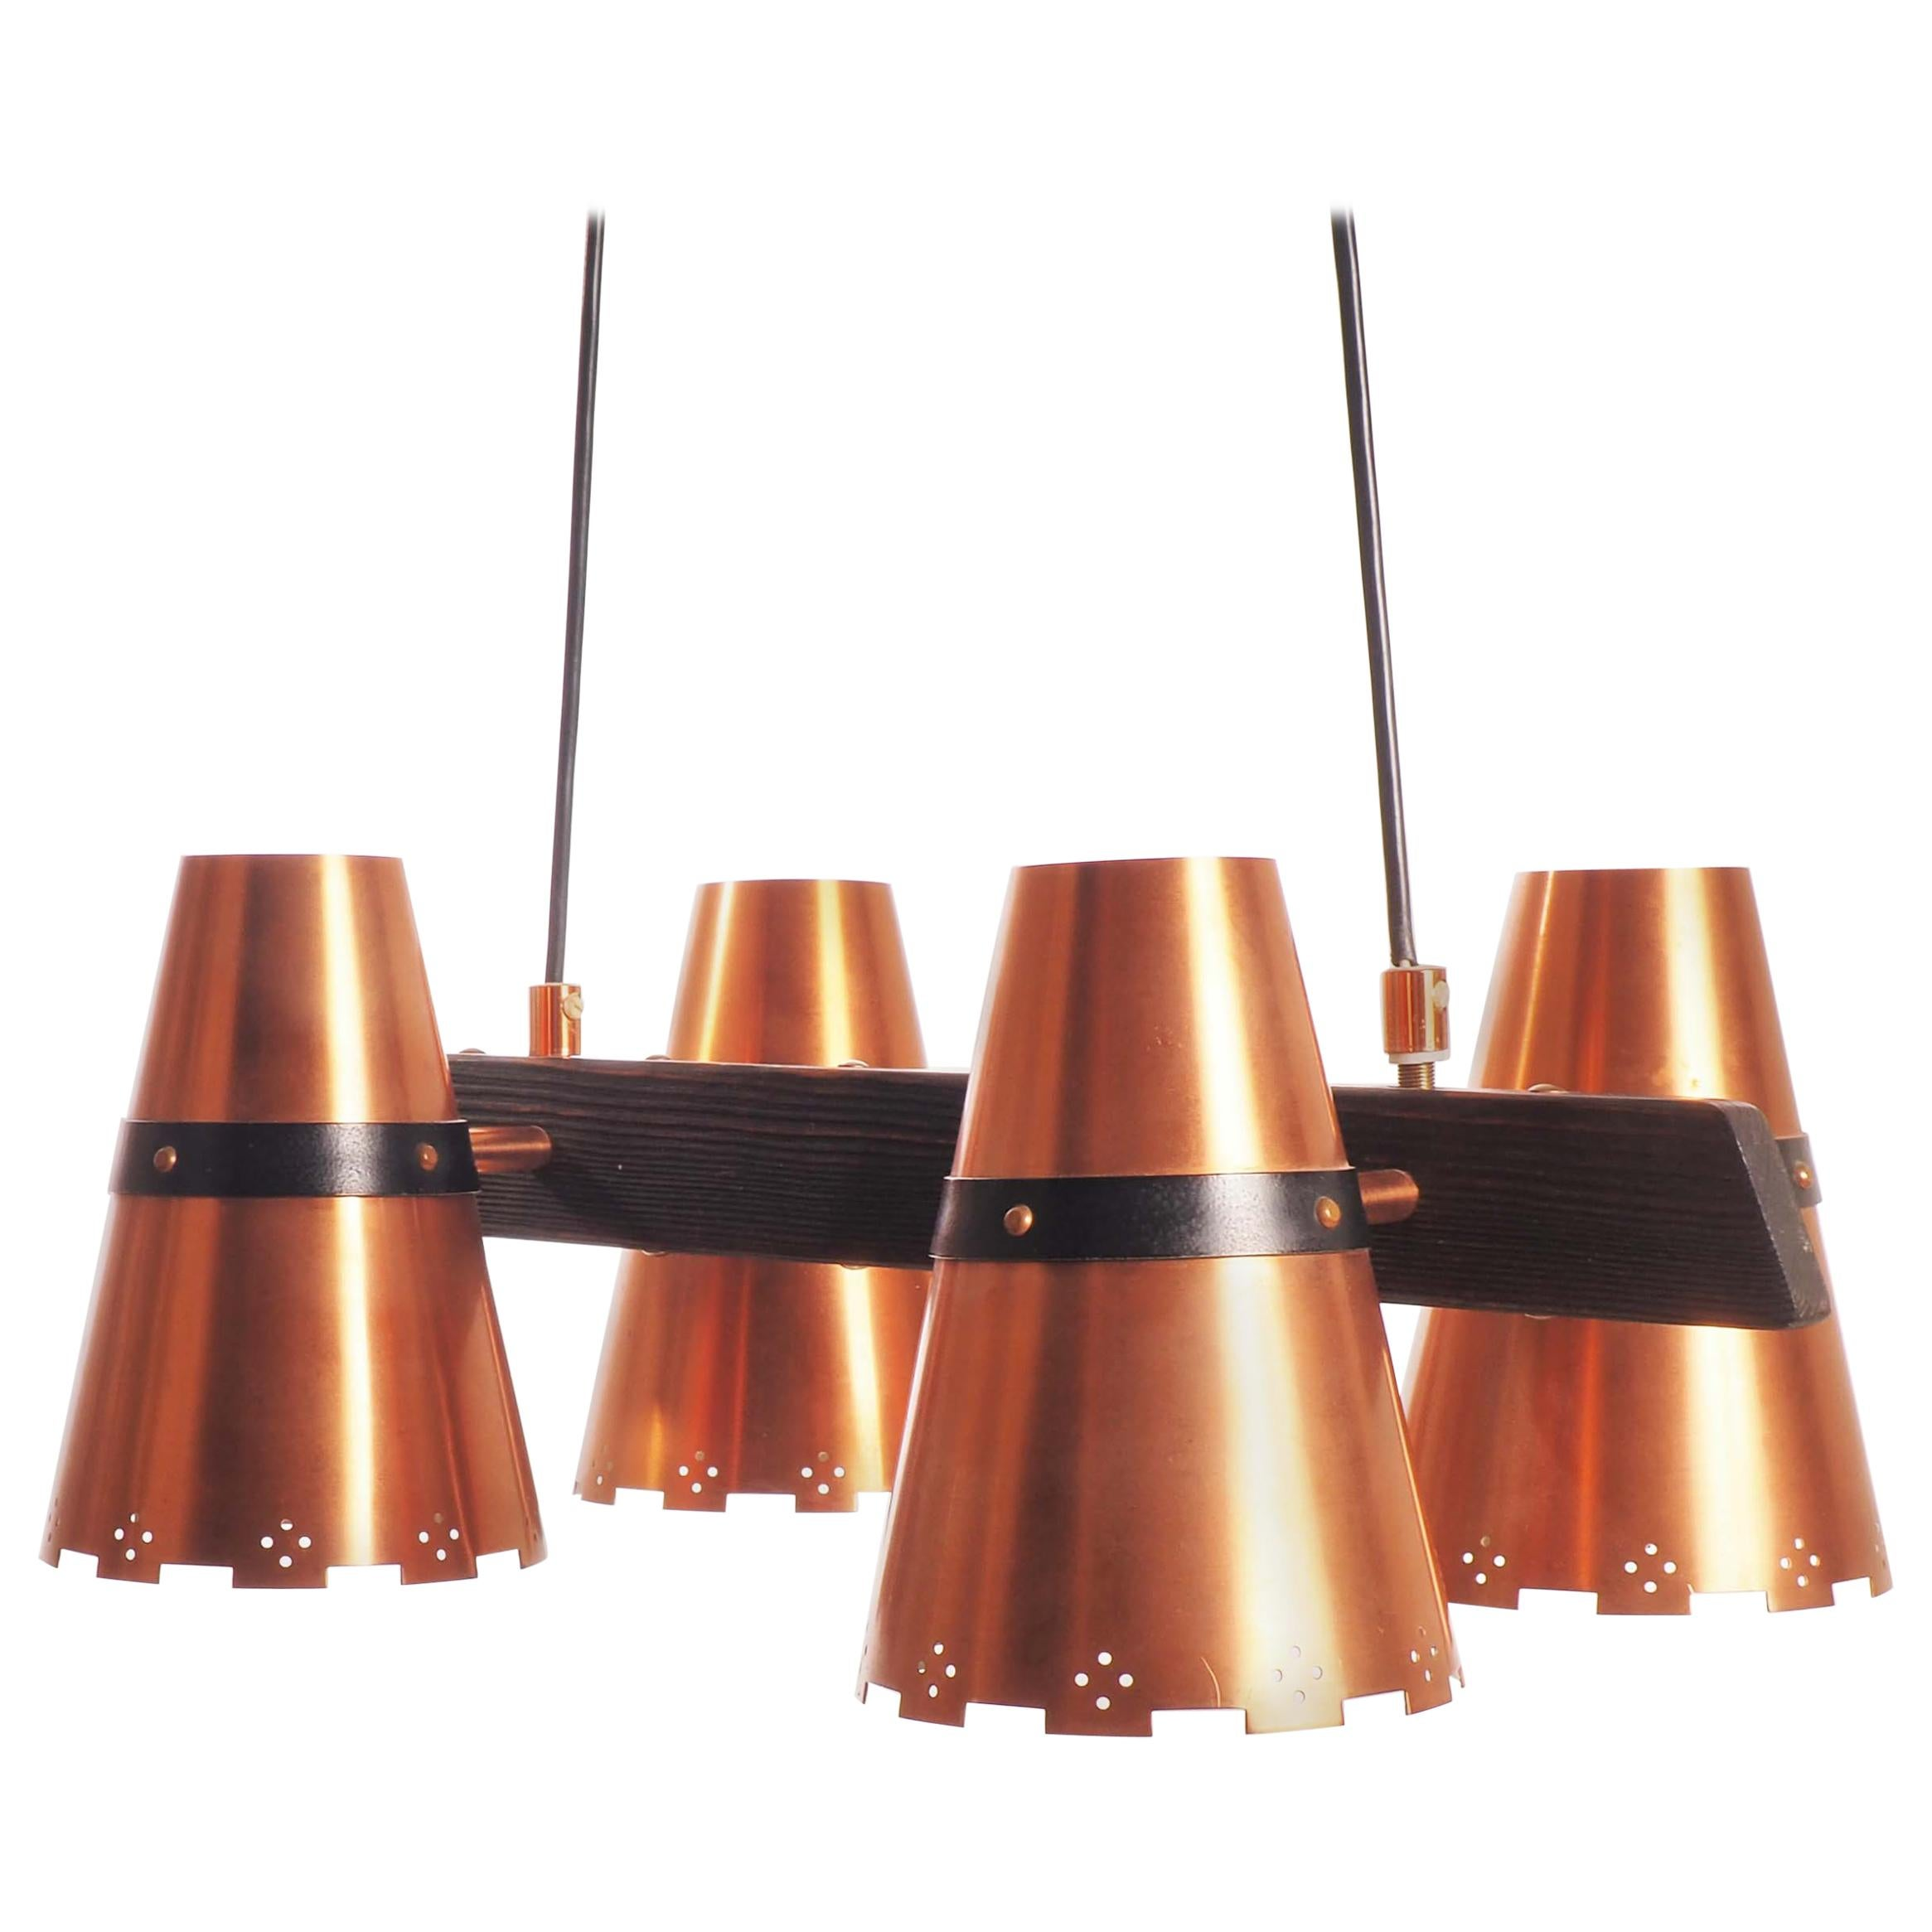 Ceiling Lamp in copper and dark wood, made in Sweden during, 1960s